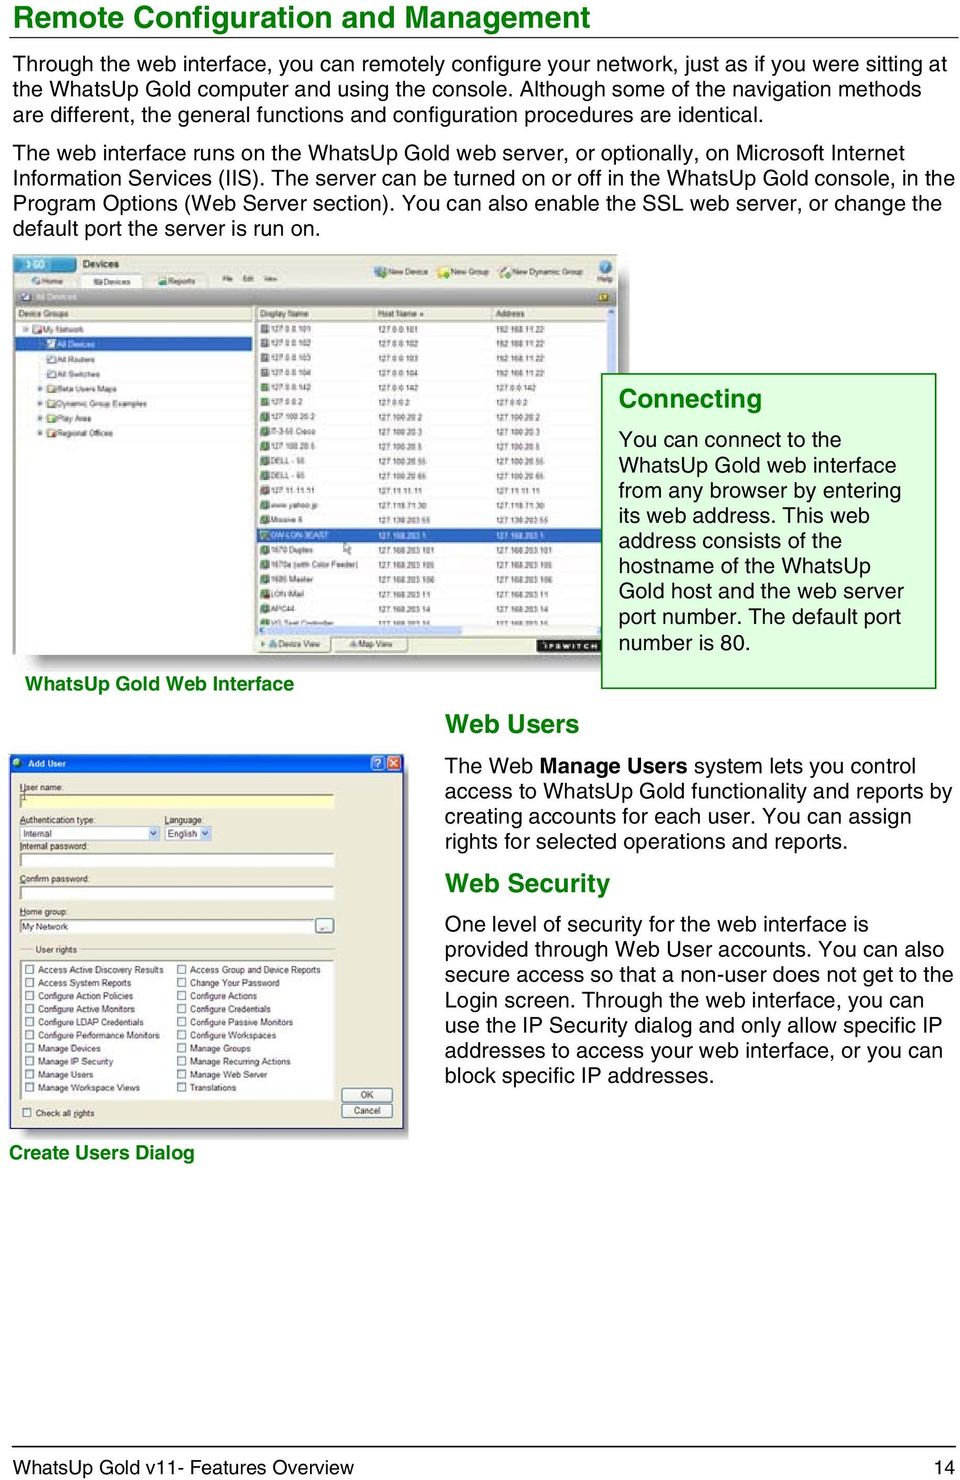 The web interface runs on the WhatsUp Gold web server, or optionally, on Microsoft Internet Information Services (IIS).